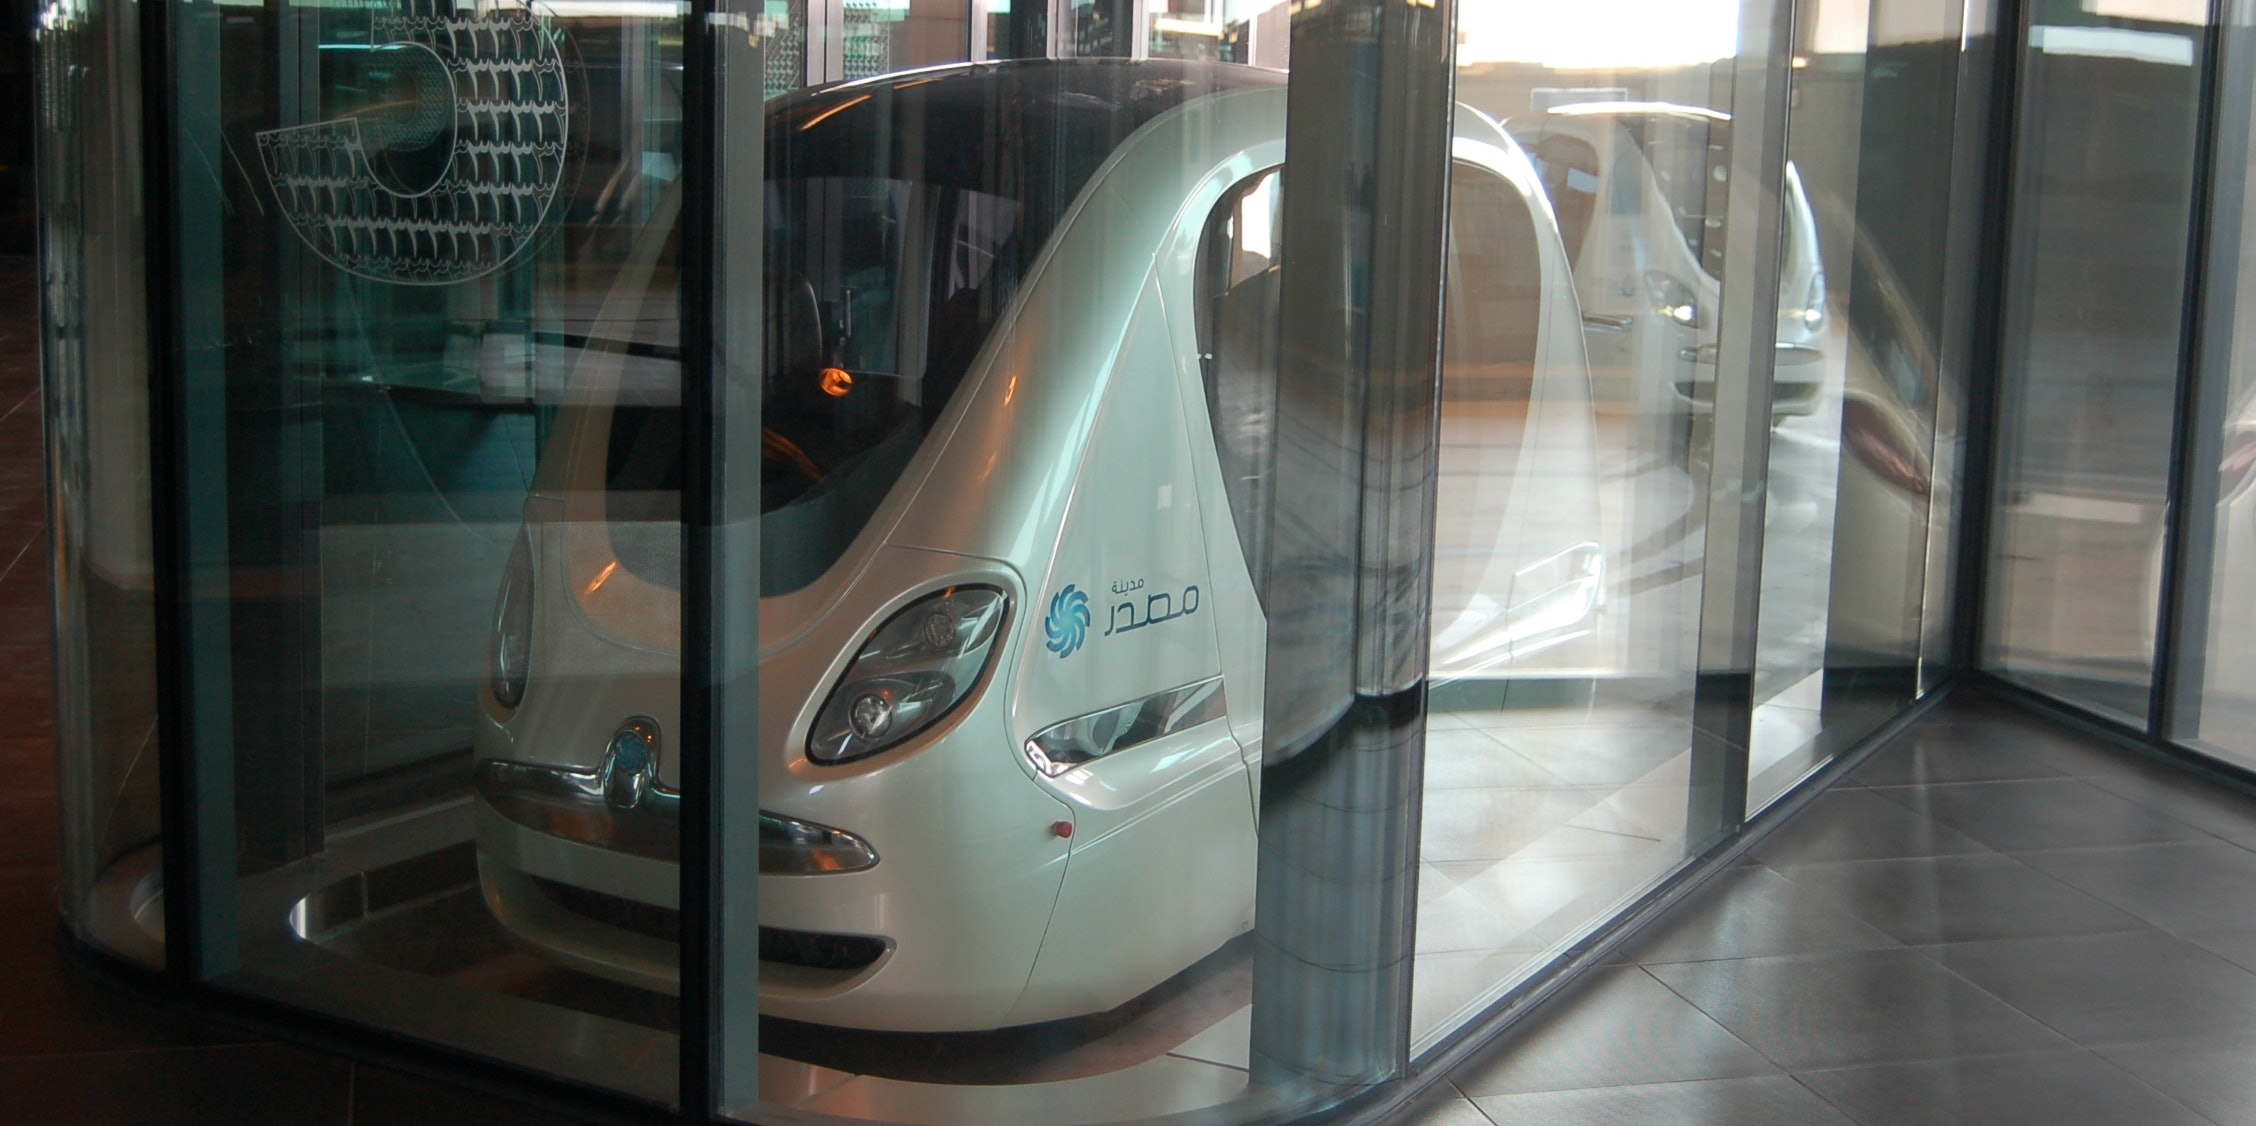 Masdar City Rapid Personal Transport  looks like Google's driverless cars had an affair with a monorail.